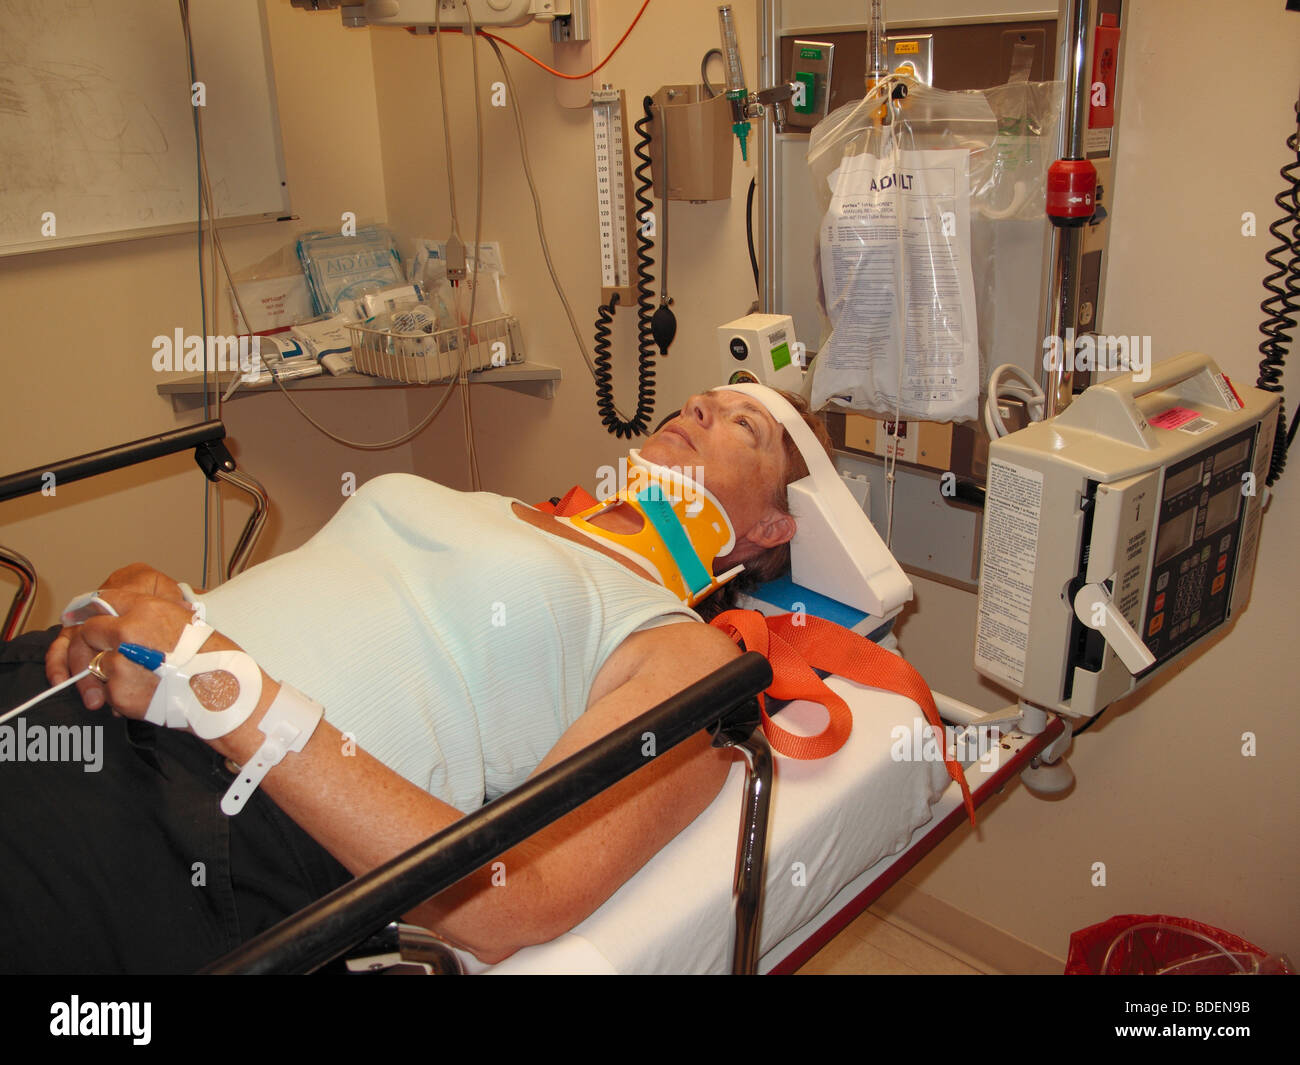 a woman who was in a car accident in a hospital emergency room stock photo 25524951 alamy. Black Bedroom Furniture Sets. Home Design Ideas